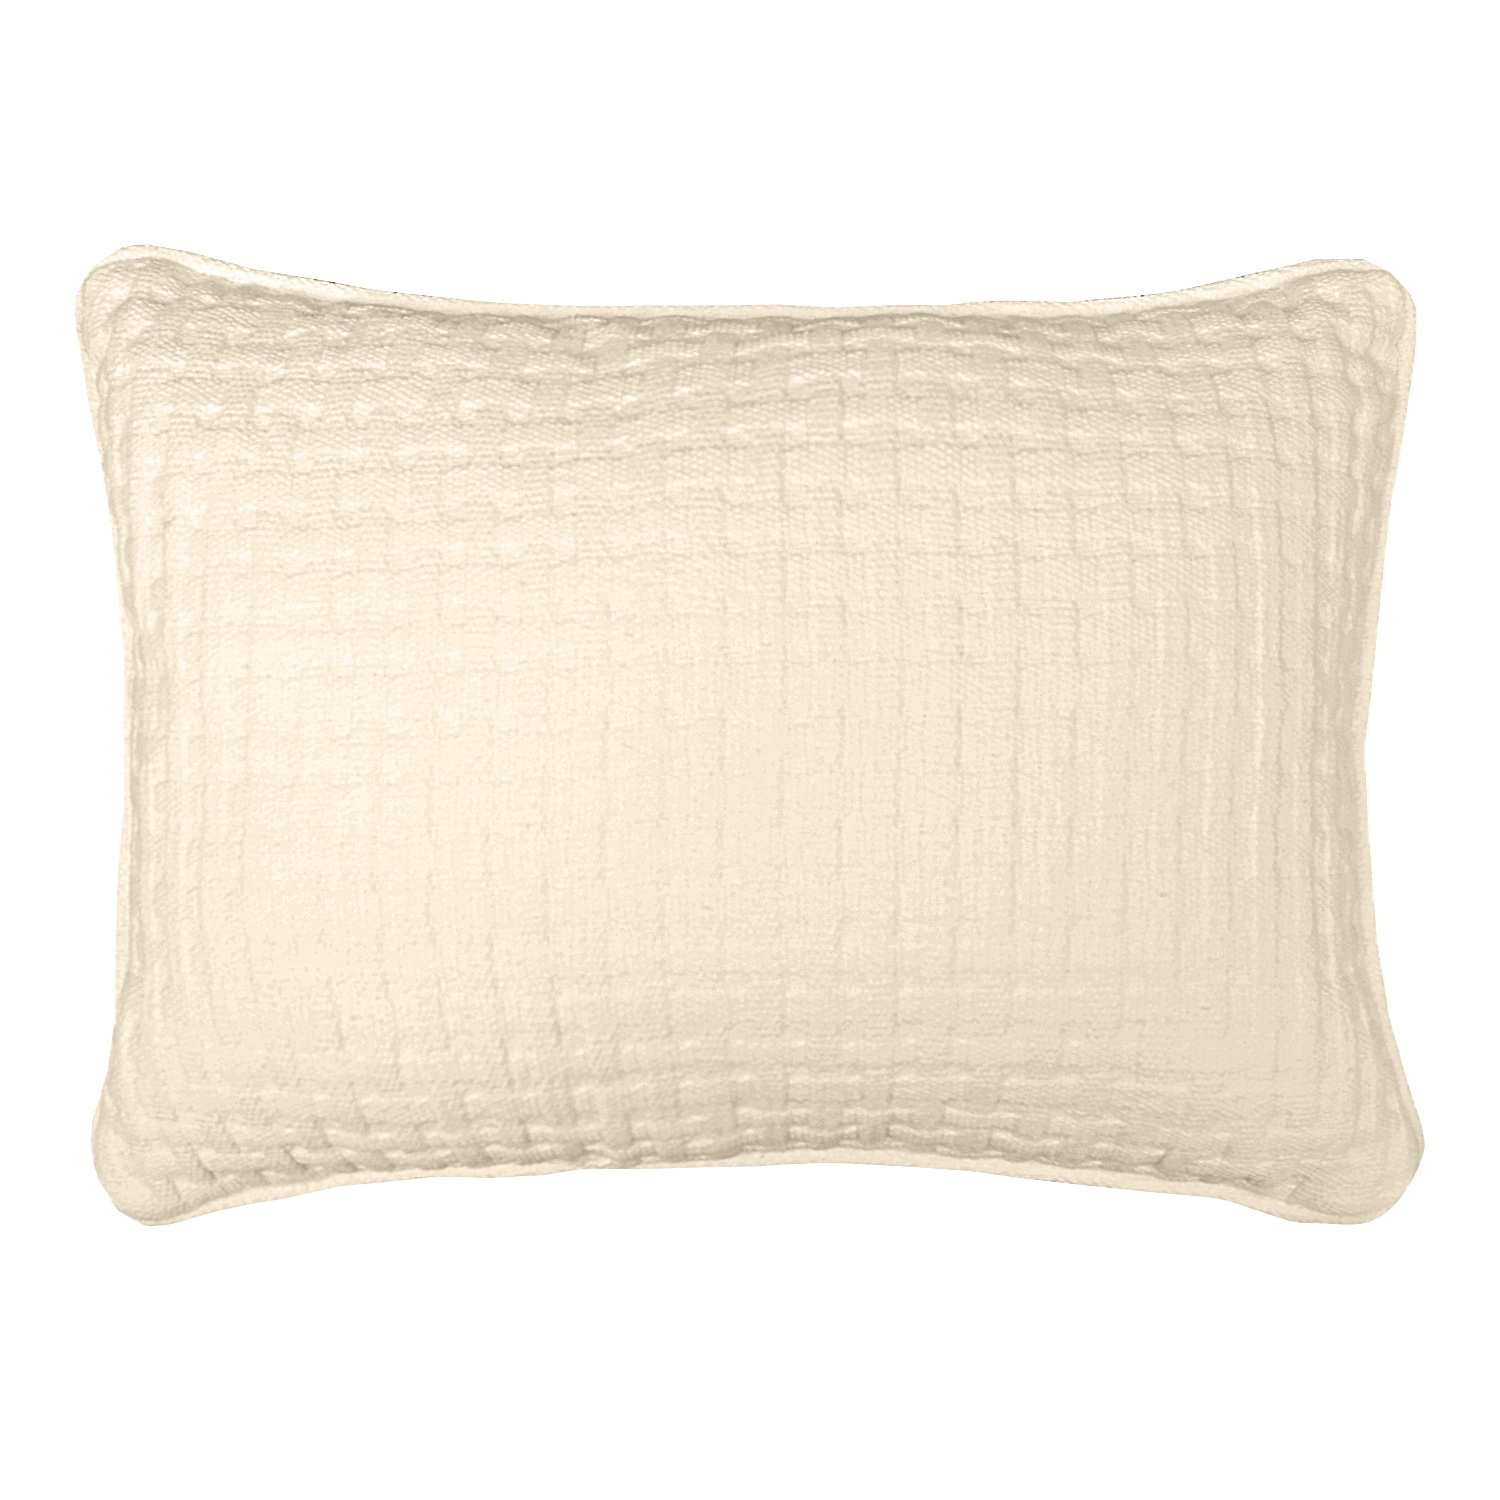 Veratex Grand Luxe Payton Boudoir Throw Pillow (As Is Ite...